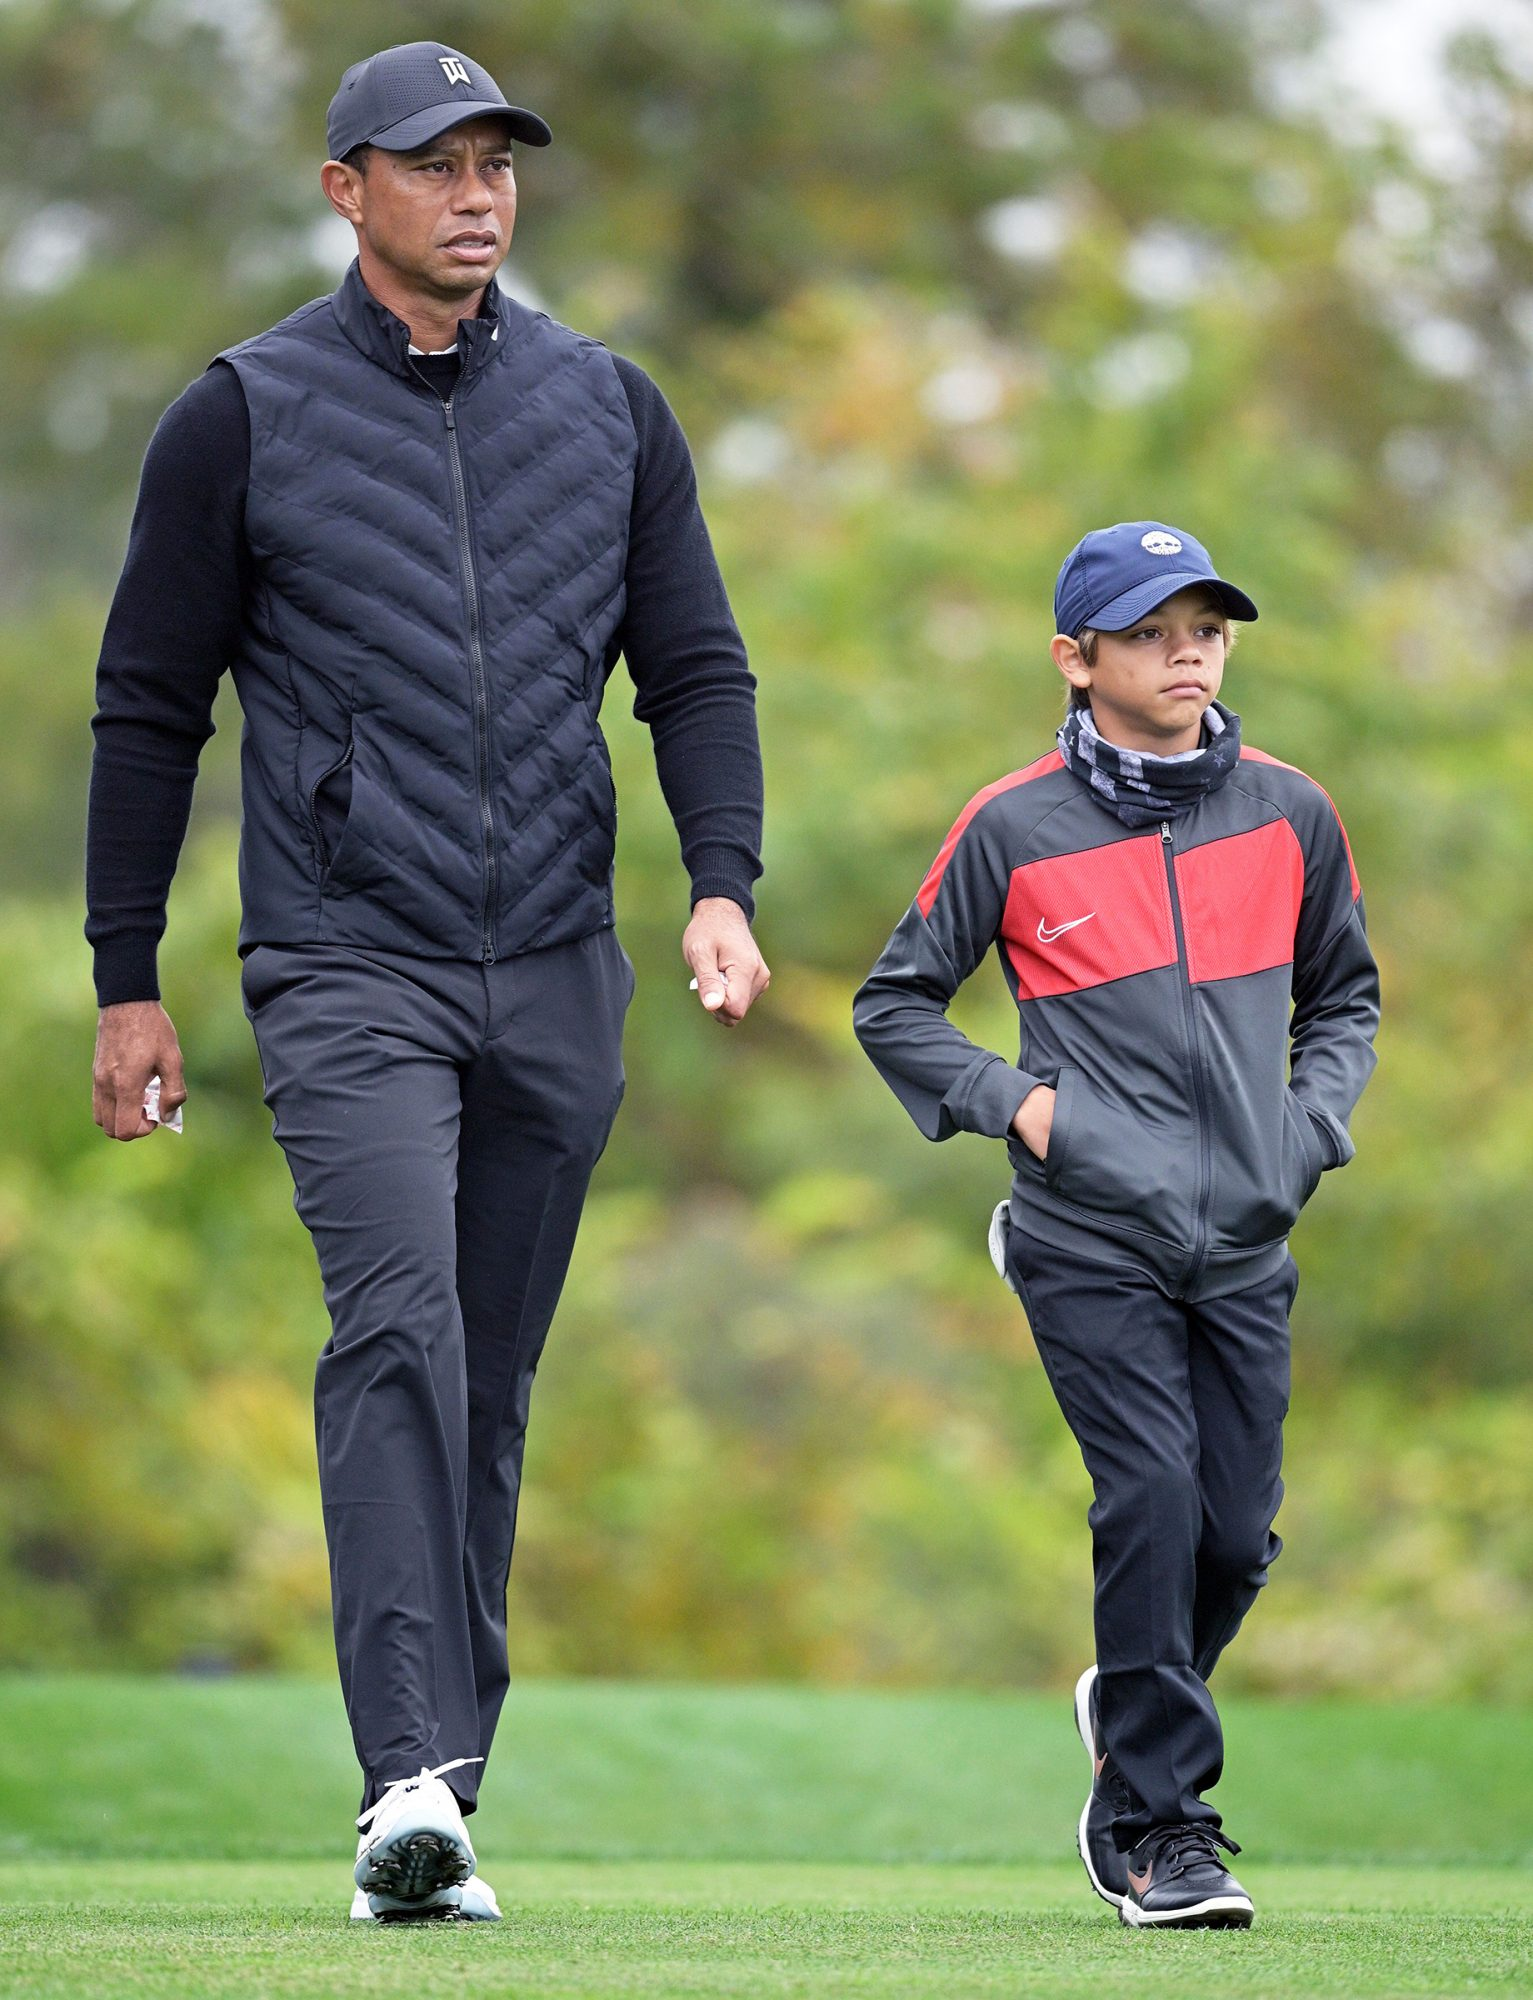 Tiger Woods, left, walks with his son Charlie after hitting their tee shots on the 10th hole during a practice round at the Father Son Challenge golf tournament